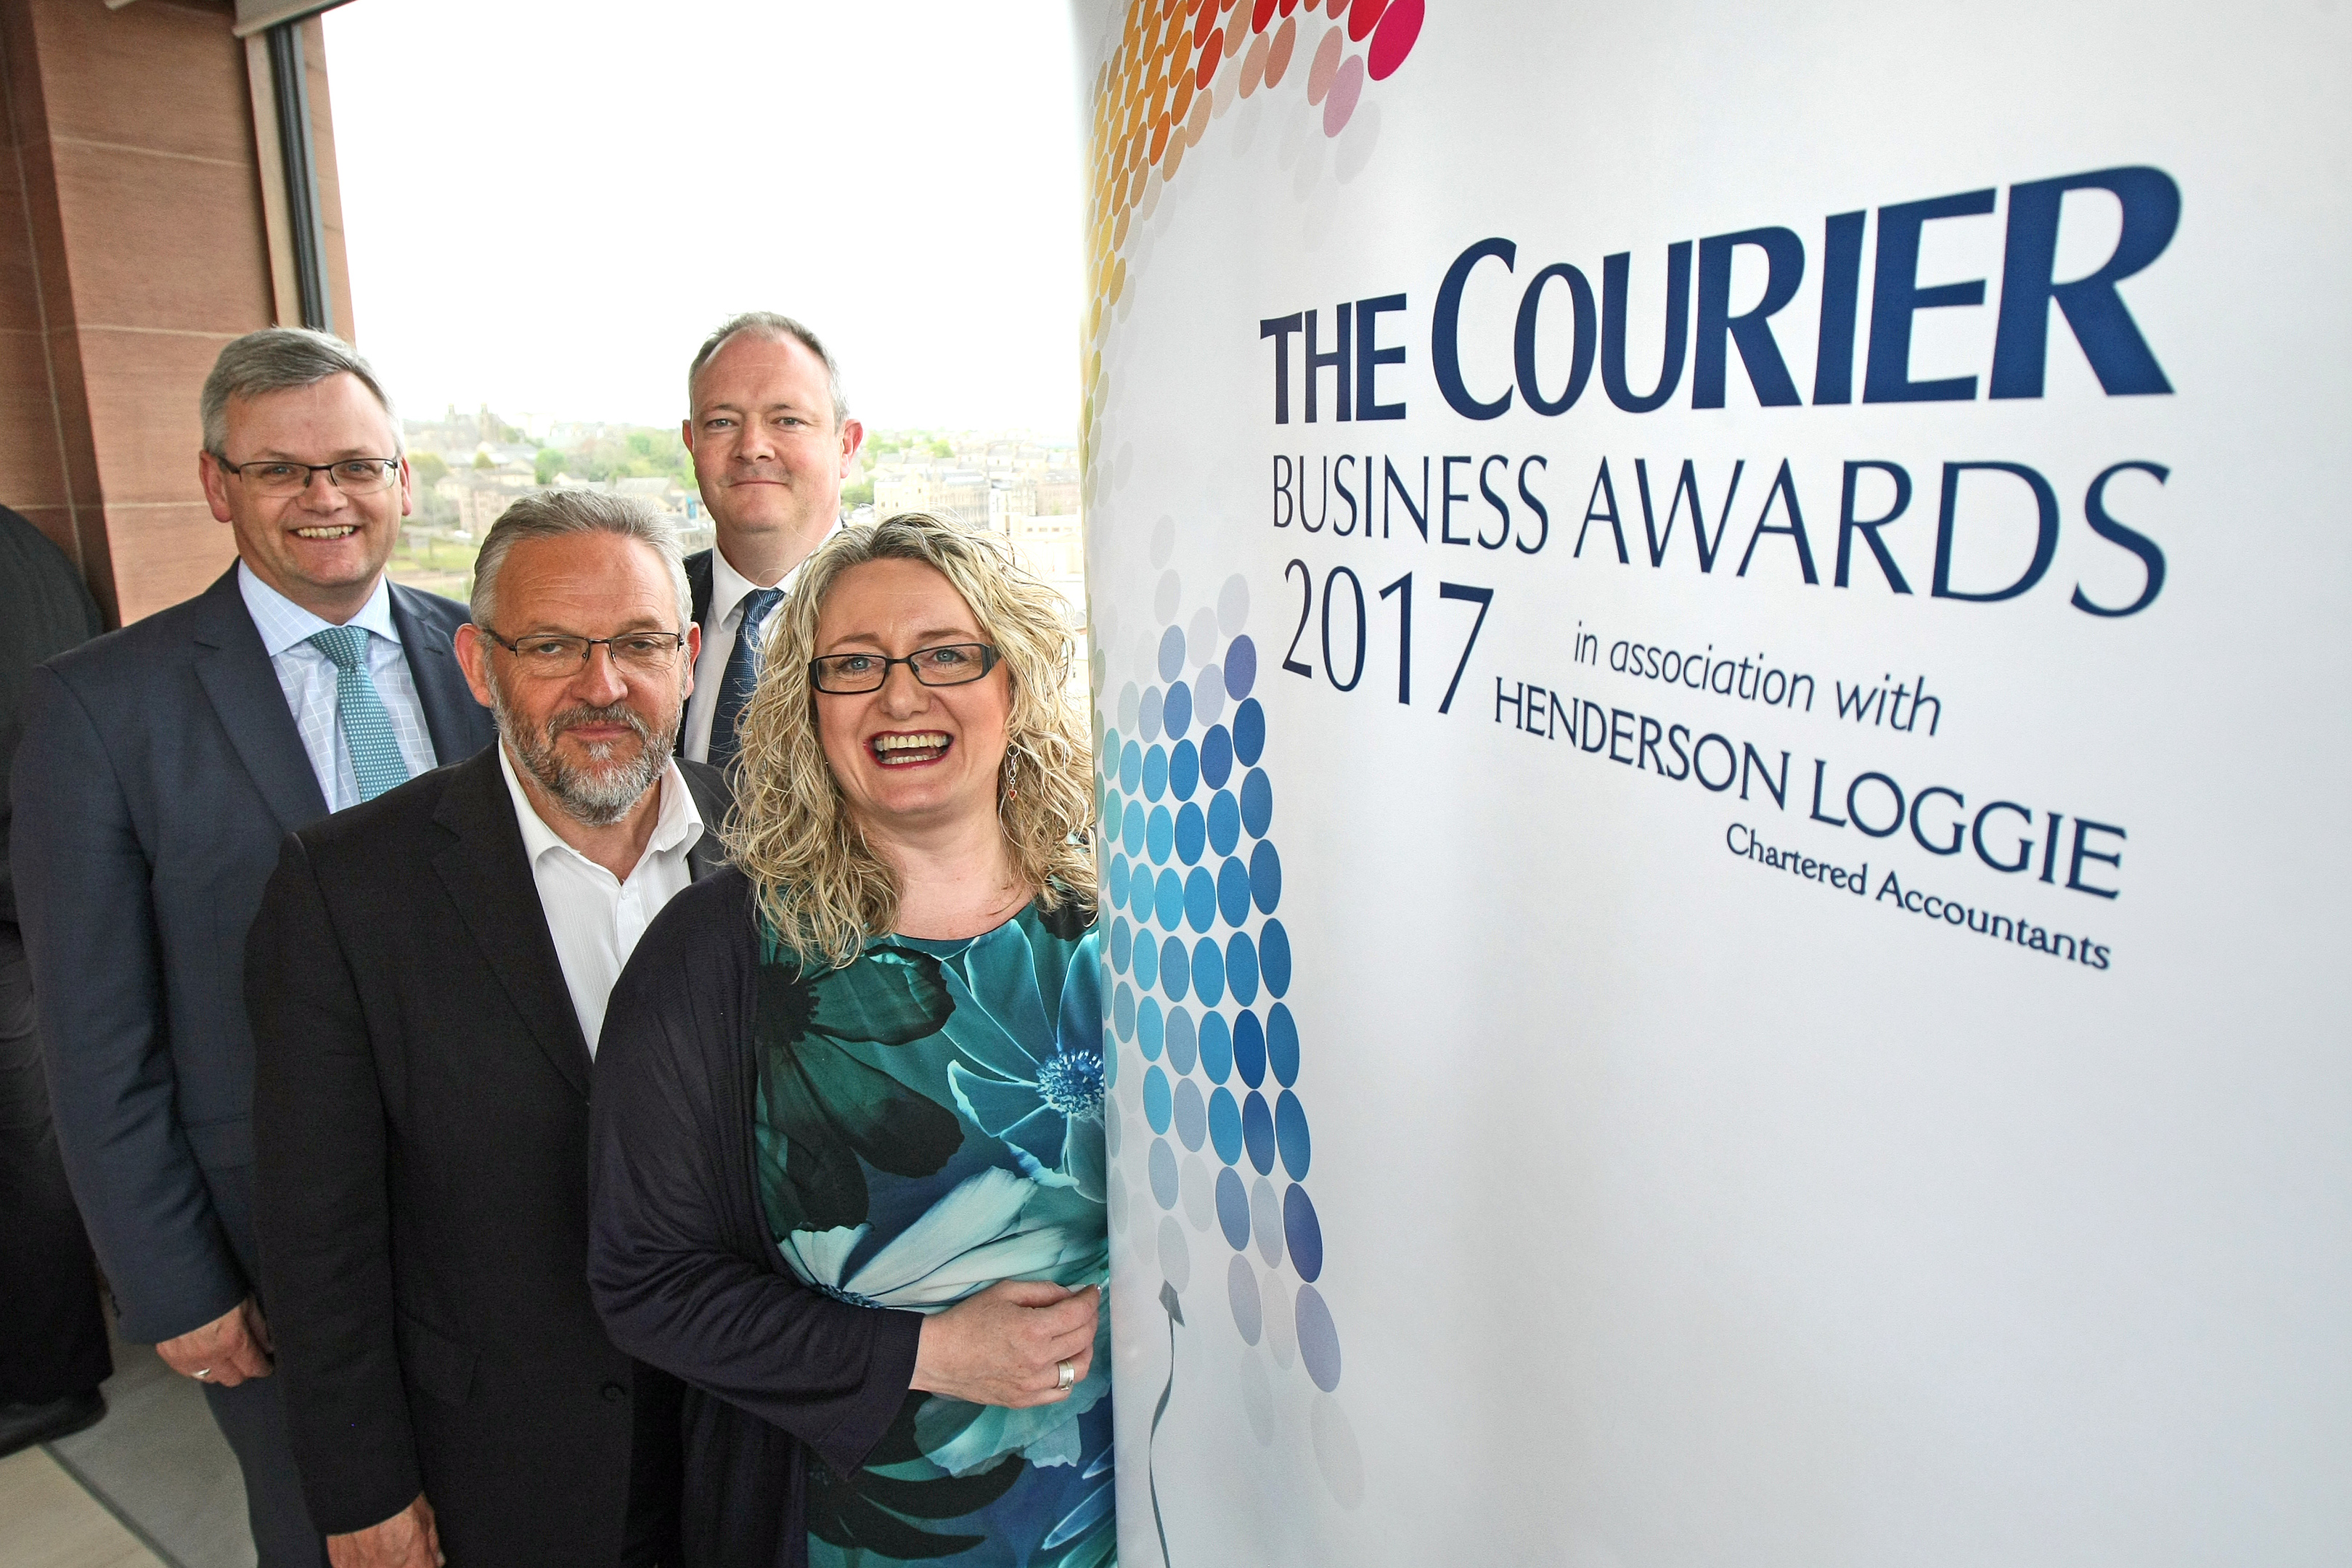 Stewart Murdoch spoke about Dundee's bid at the launch of the The Courier Business Awards 2017. He is pictured with Alan Davis, of awards partner Henderson Logie, editor of The Courier Richard Neville and Alison Henderson, CEO of Dundee Chamber of Commerce